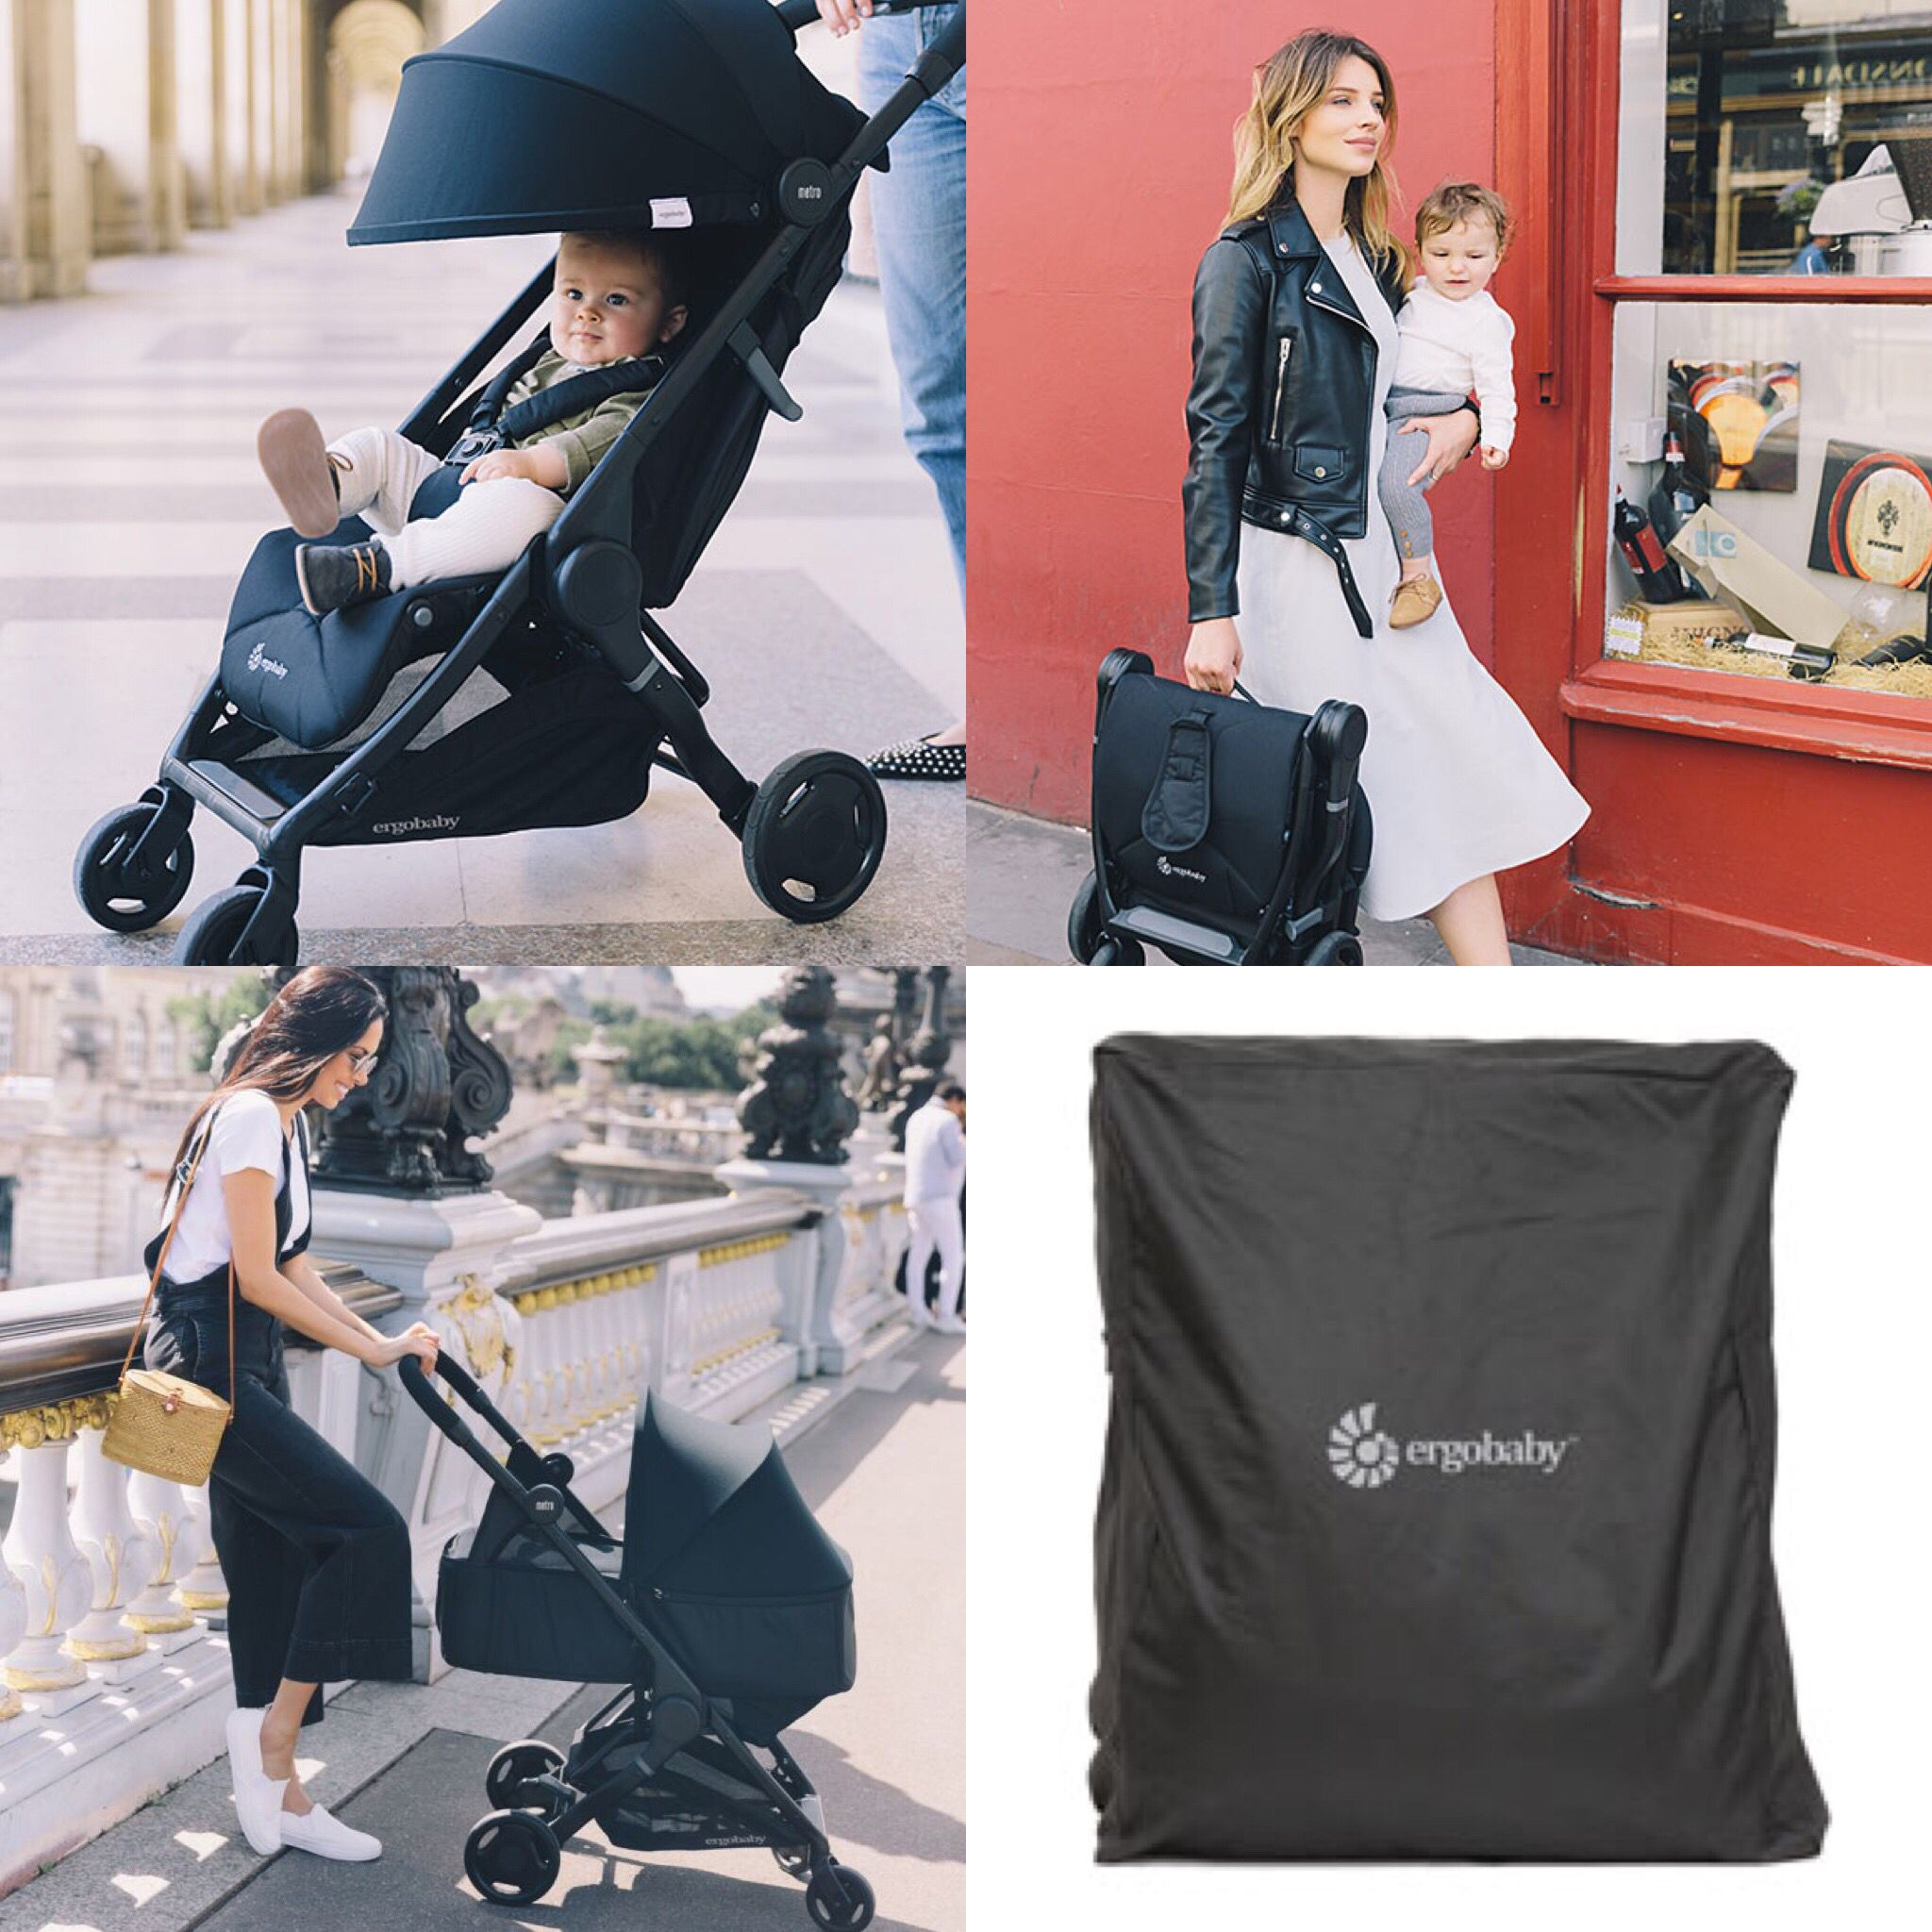 ERGOBABY METRO COMPACT CITY STROLLER, MY REVIEW. My